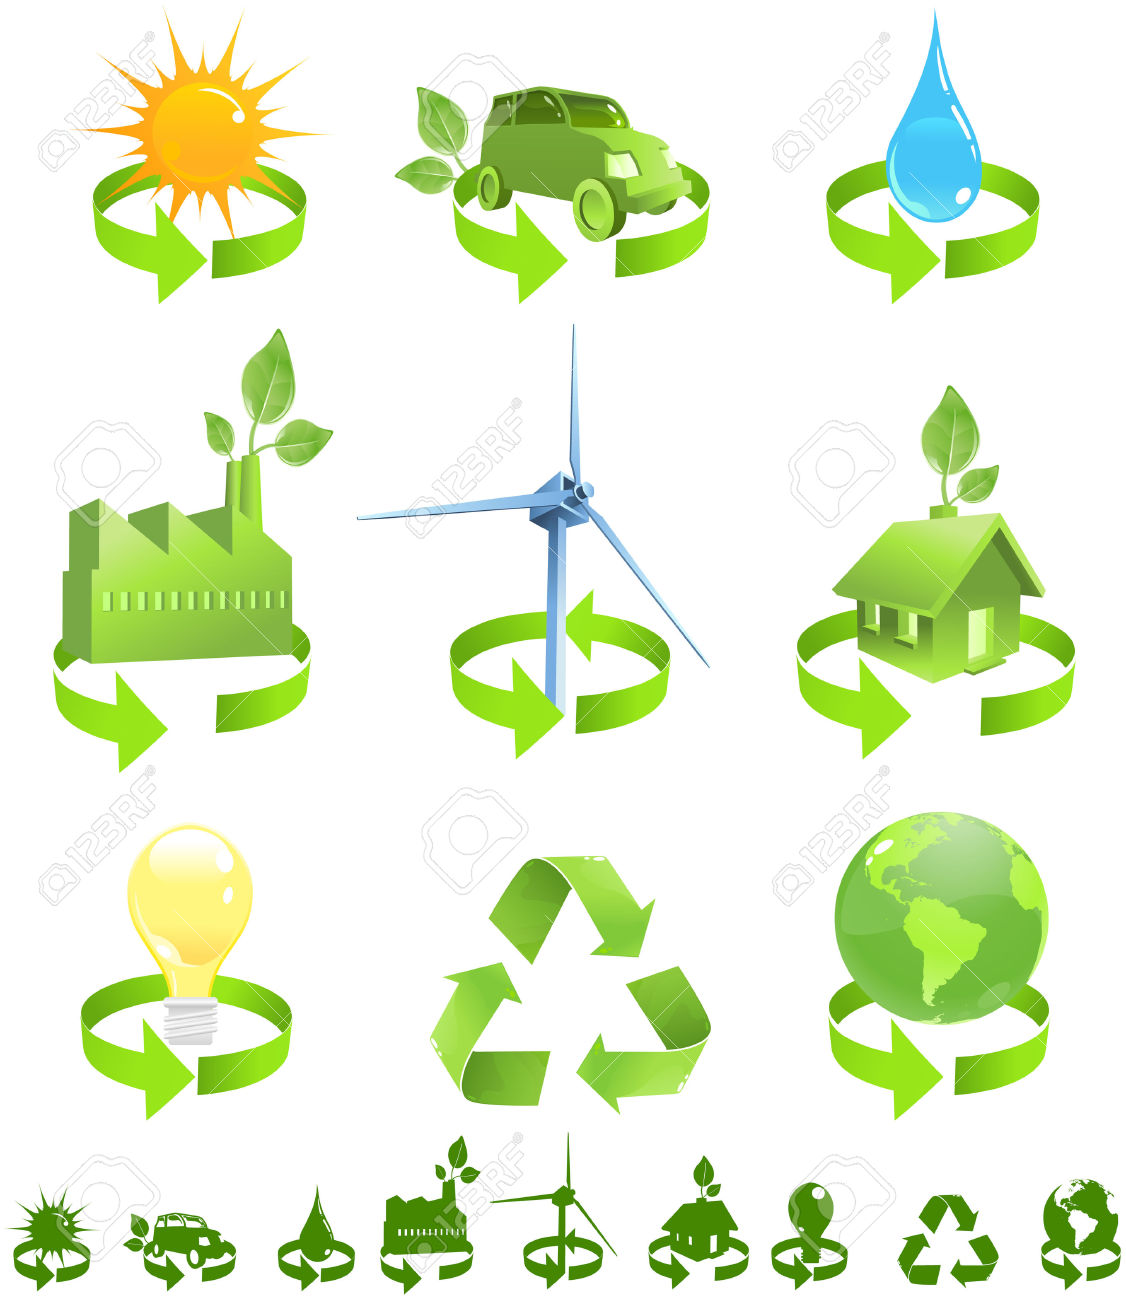 Green Vector Icons Show Forms Of Recycled Energy Including Sun.